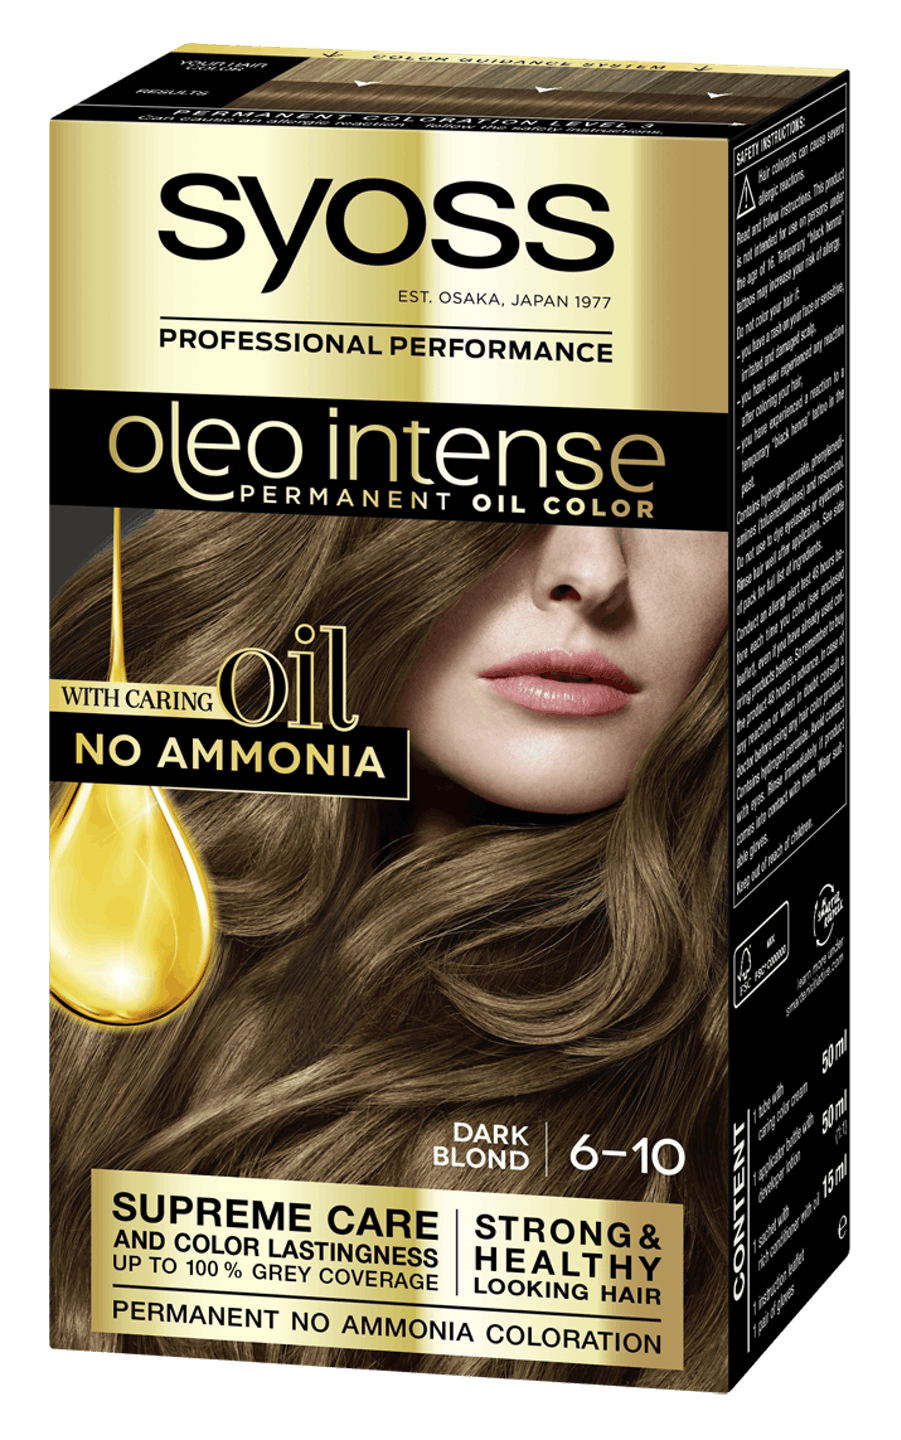 Syoss Oleo Intense Permanent Oil Color 6-10 Dark Blond